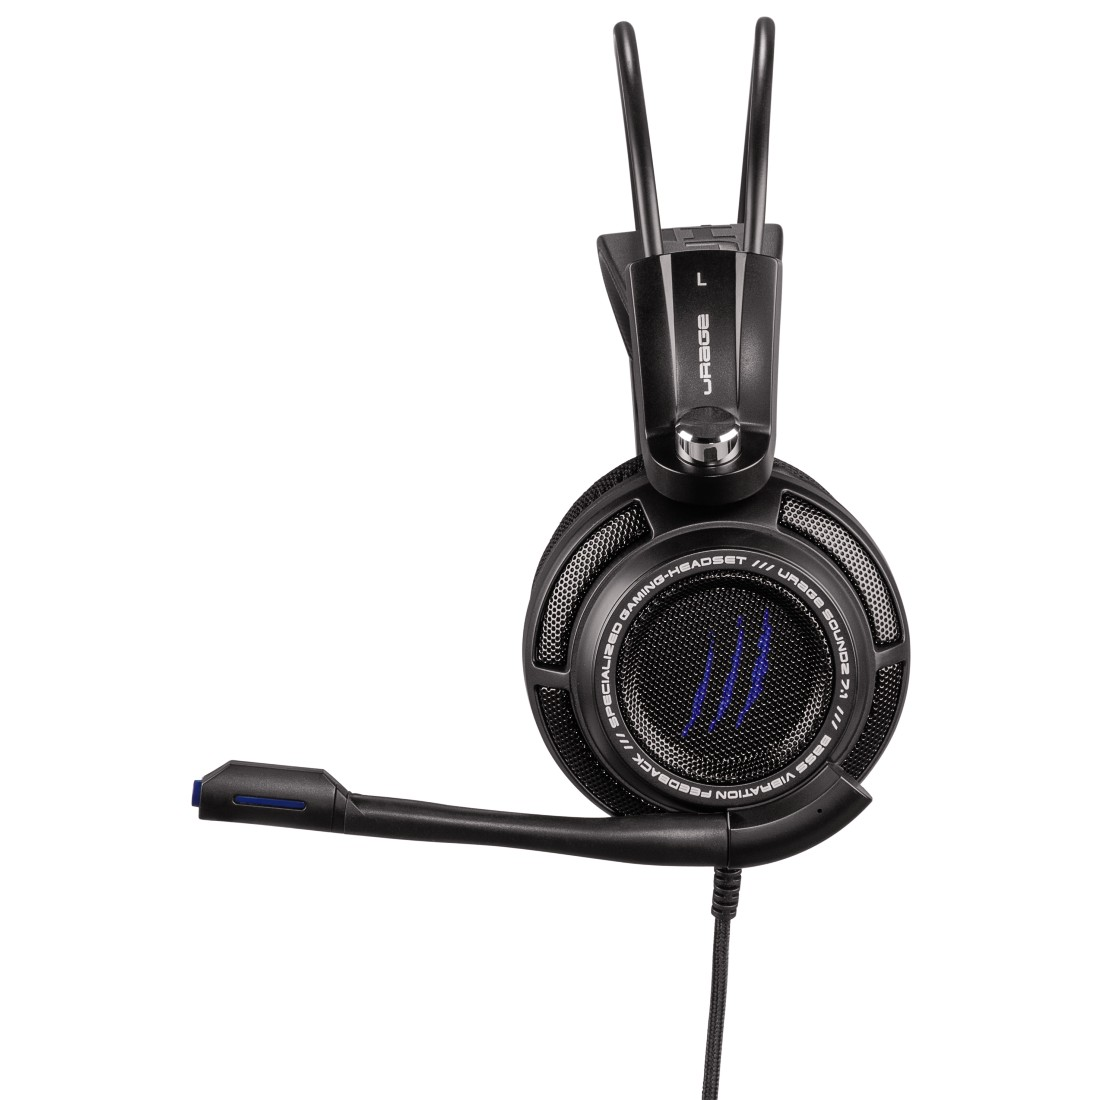 dex2 High-Res Detail 2 - Hama, uRage SoundZ 7.1 Gaming Headset, black